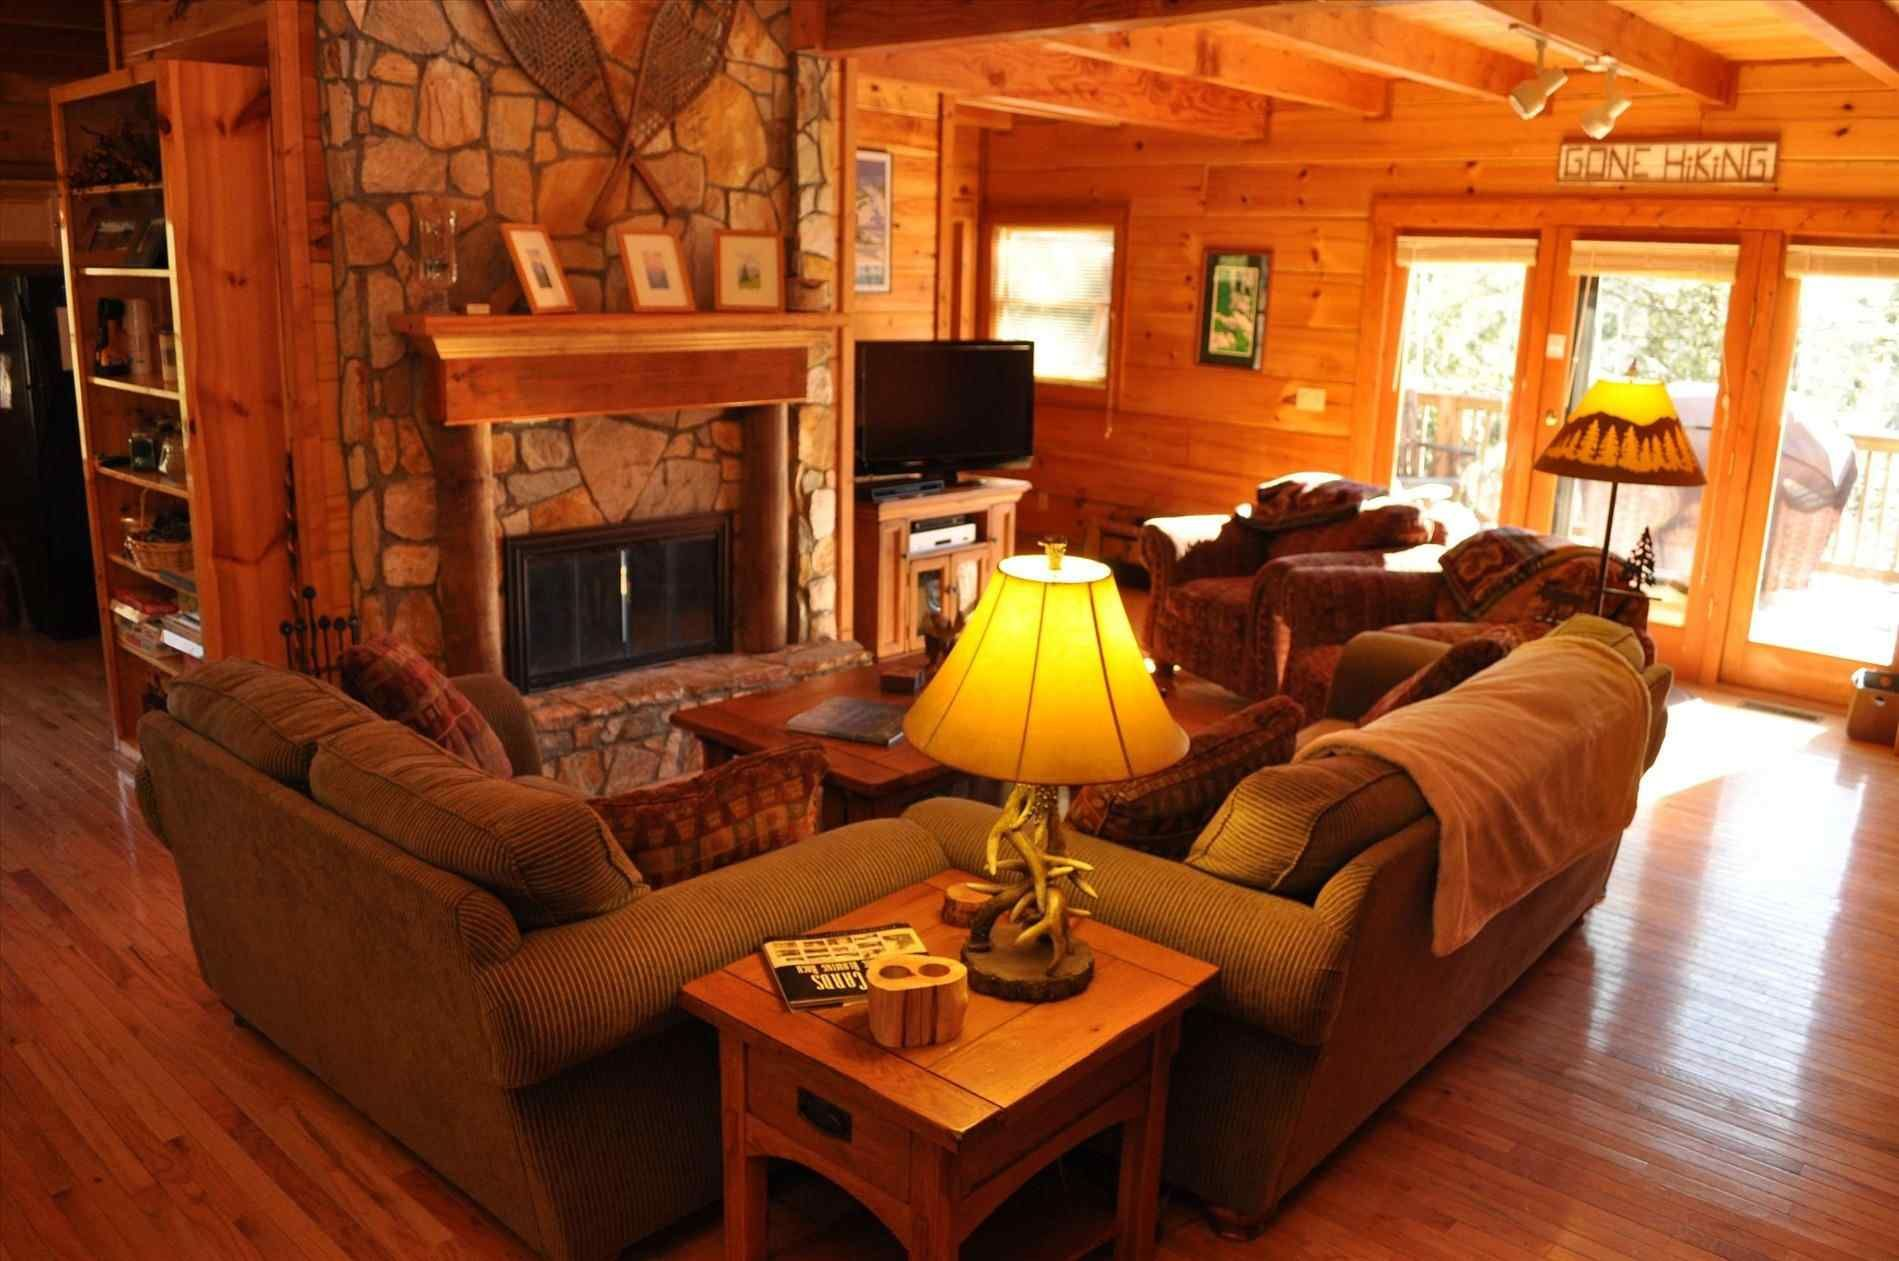 Room Ideas Living Room Rustic Ideas For A Cozy Organic Decorating Rooms Design Rustic Small Cabin Liv Cabin Living Room Cabin Living Room Decor Log Home Living #small #cabin #living #room